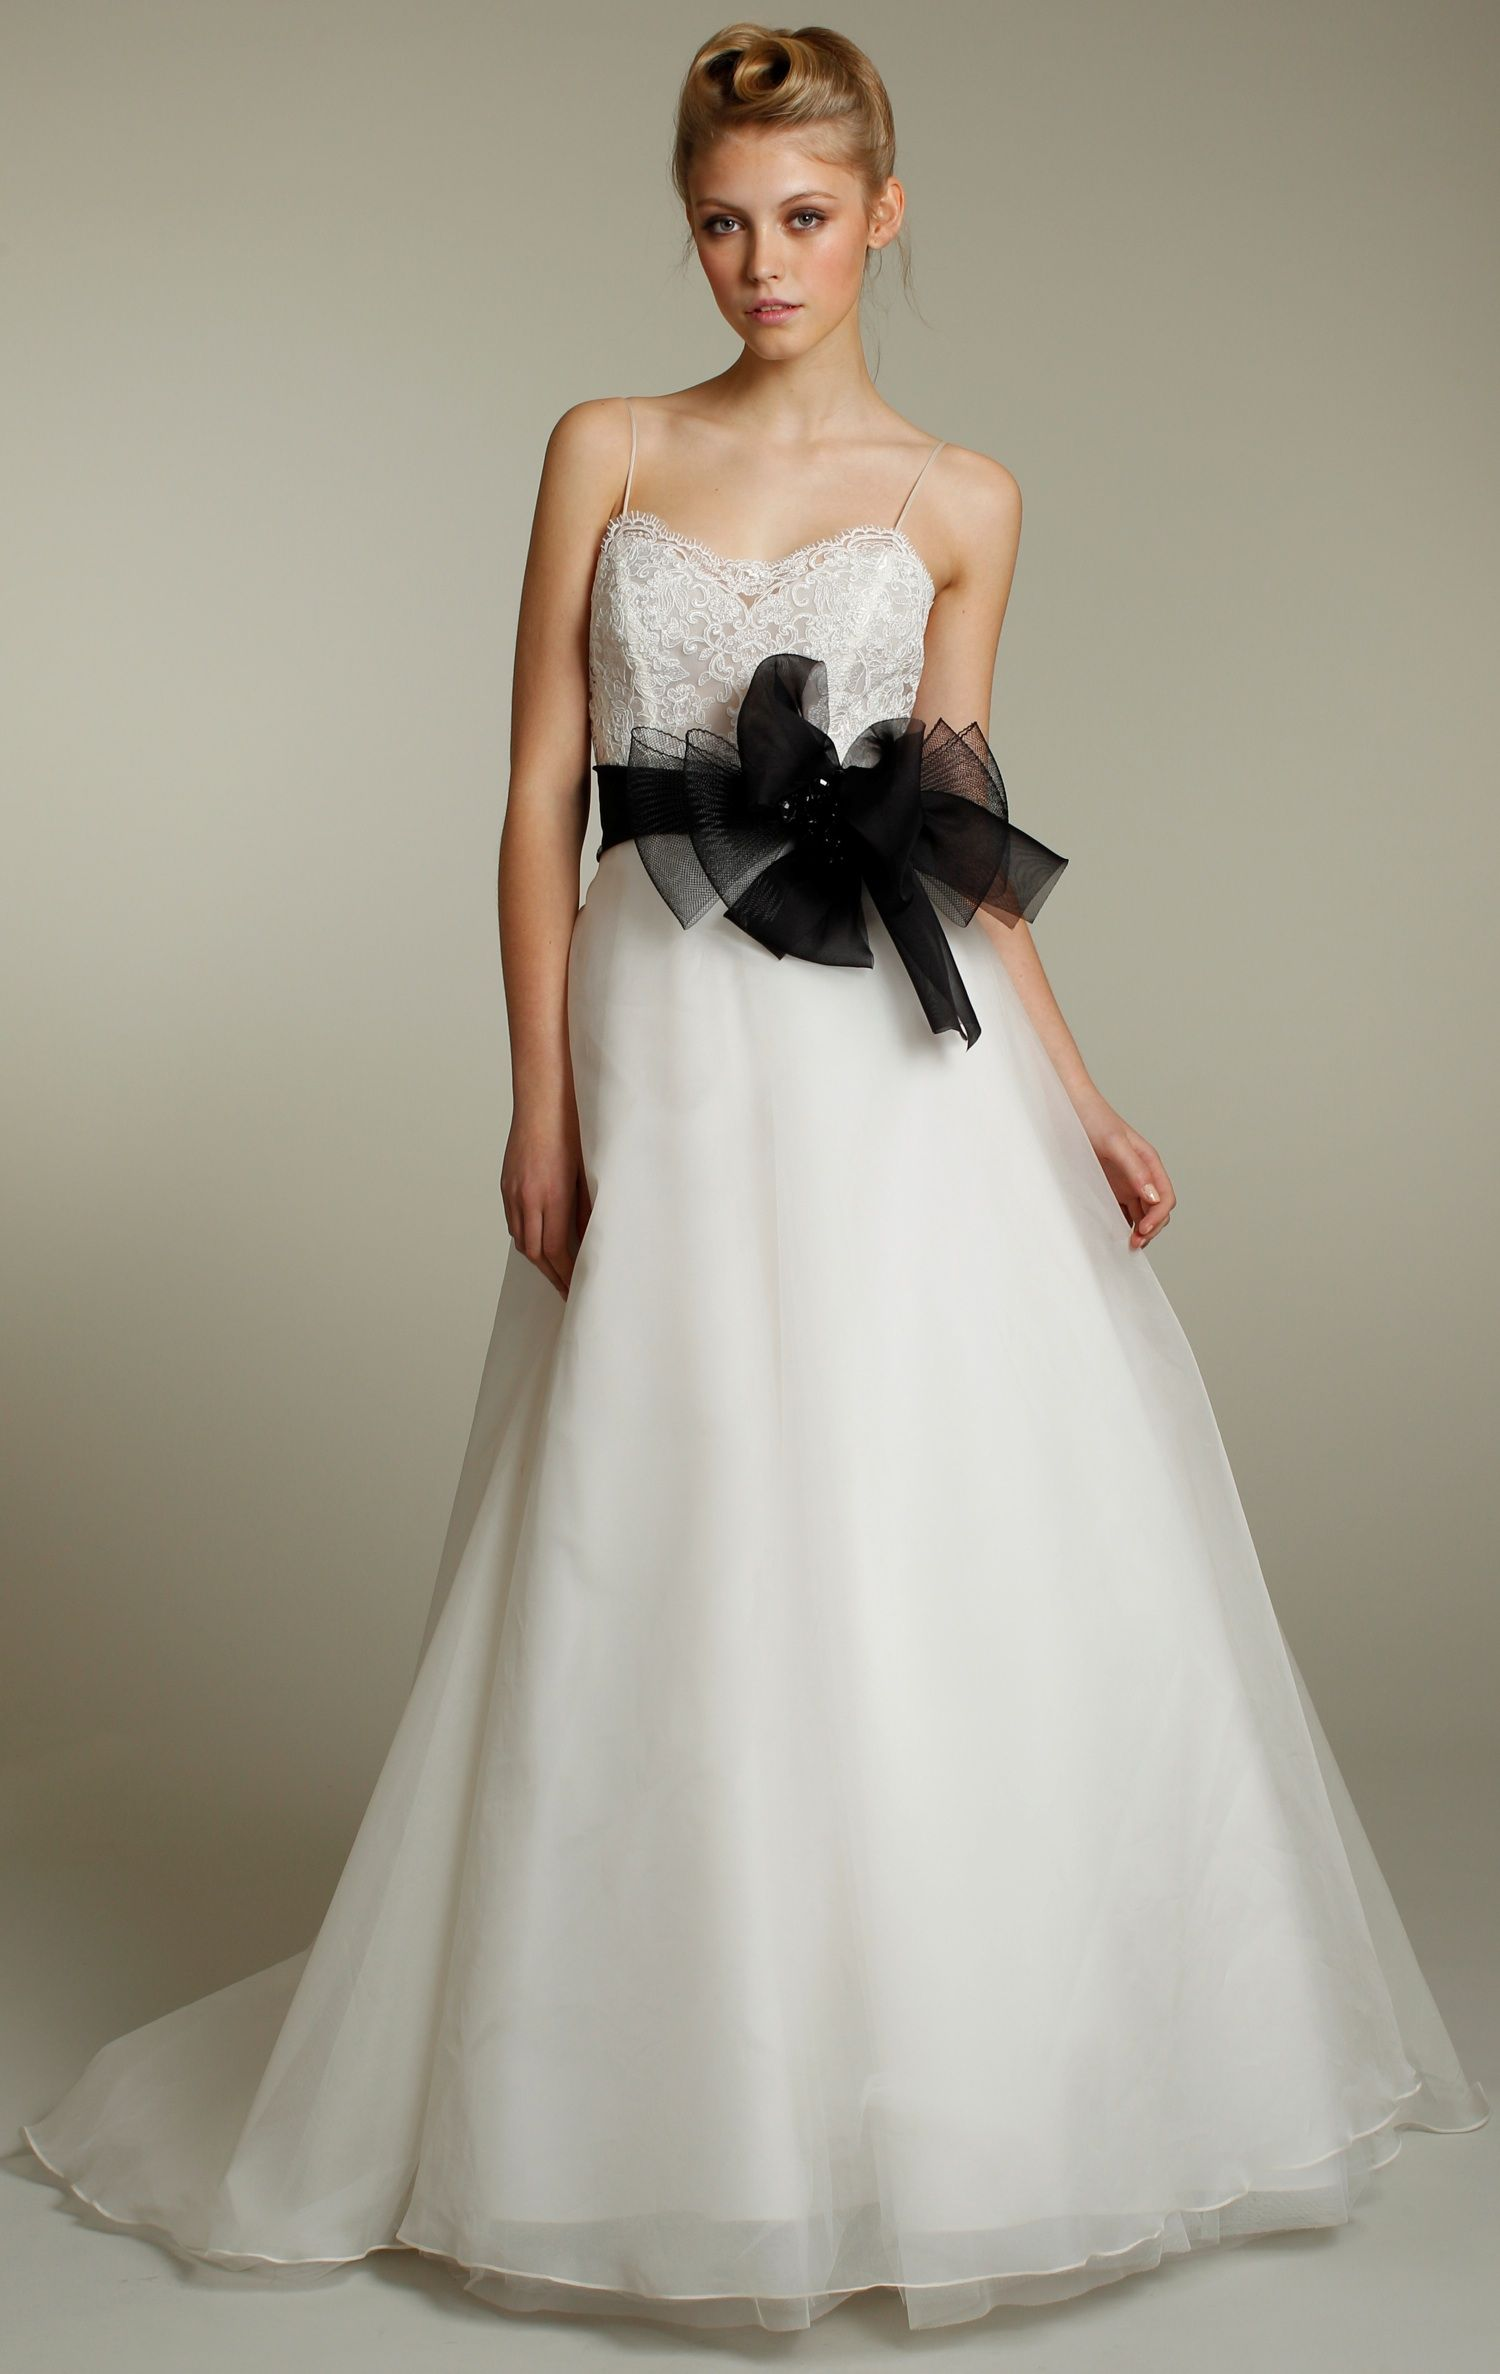 Wedding dresses with black sashes google search wedding the wedding dresses with black sashes google search ombrellifo Image collections